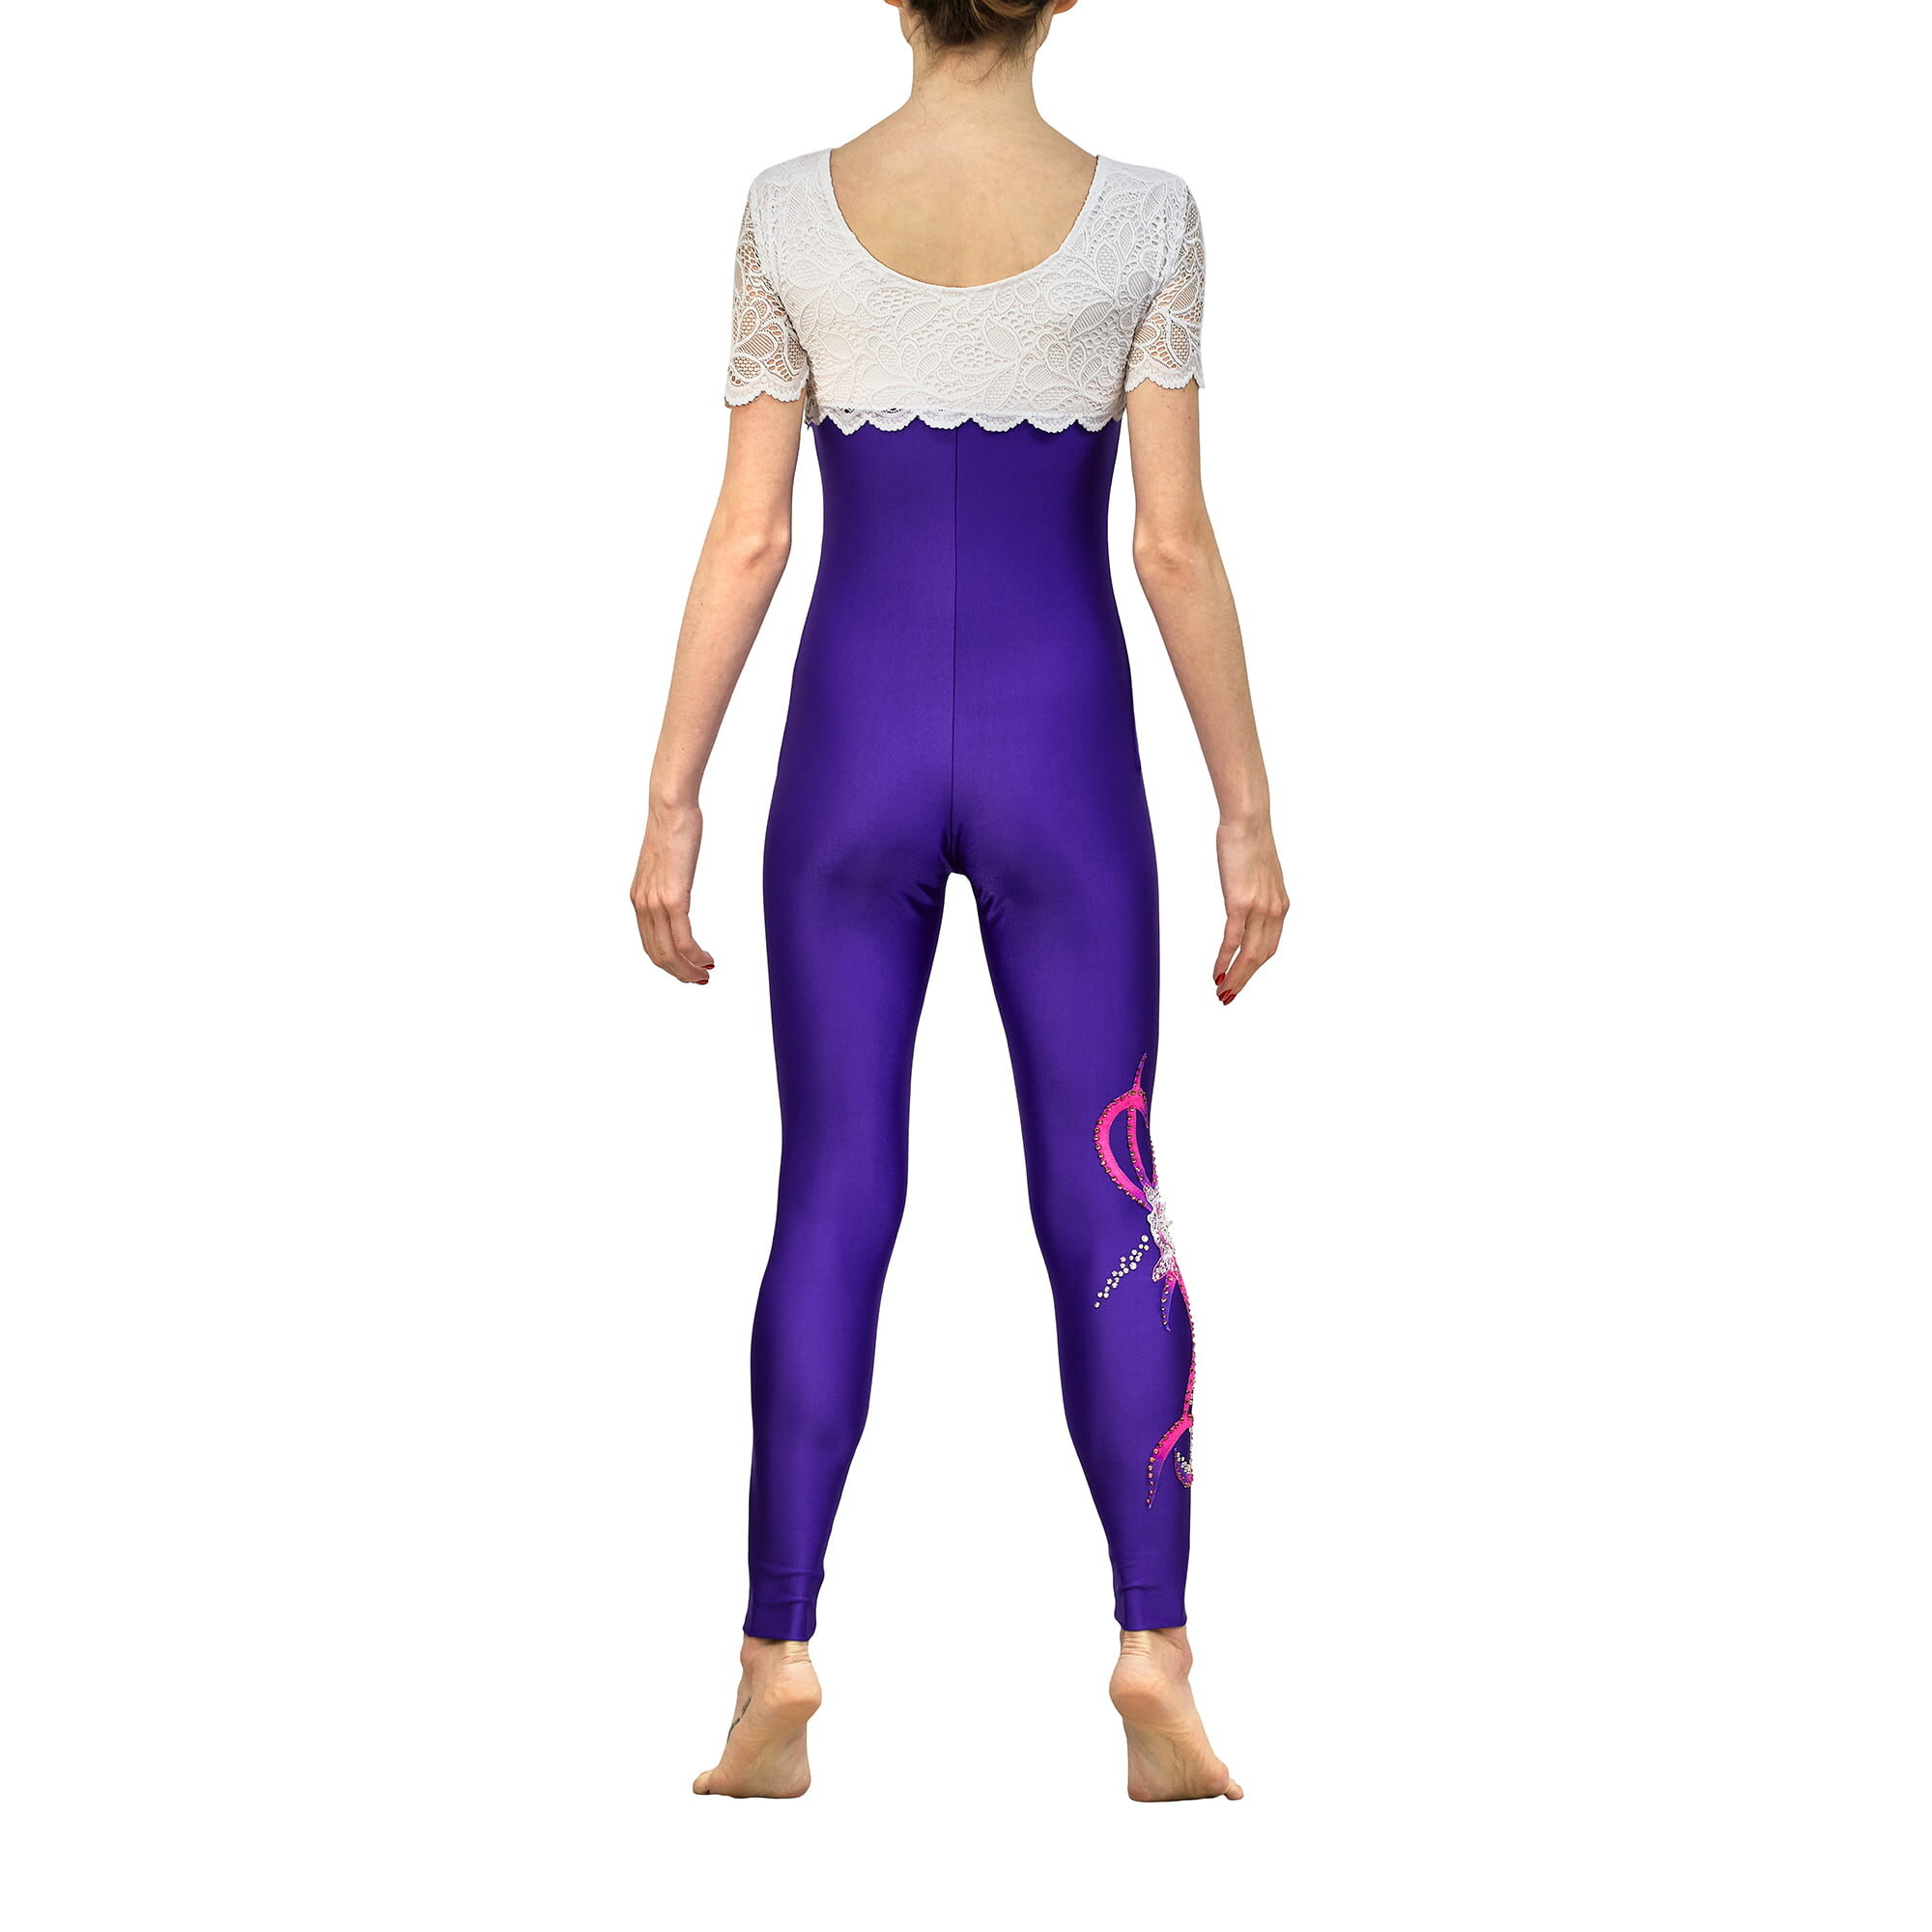 Rhythmic Gymnastics Jumpsuit 249 with winglet sleeves, but without collar - made in violet, fuchsia & white colors